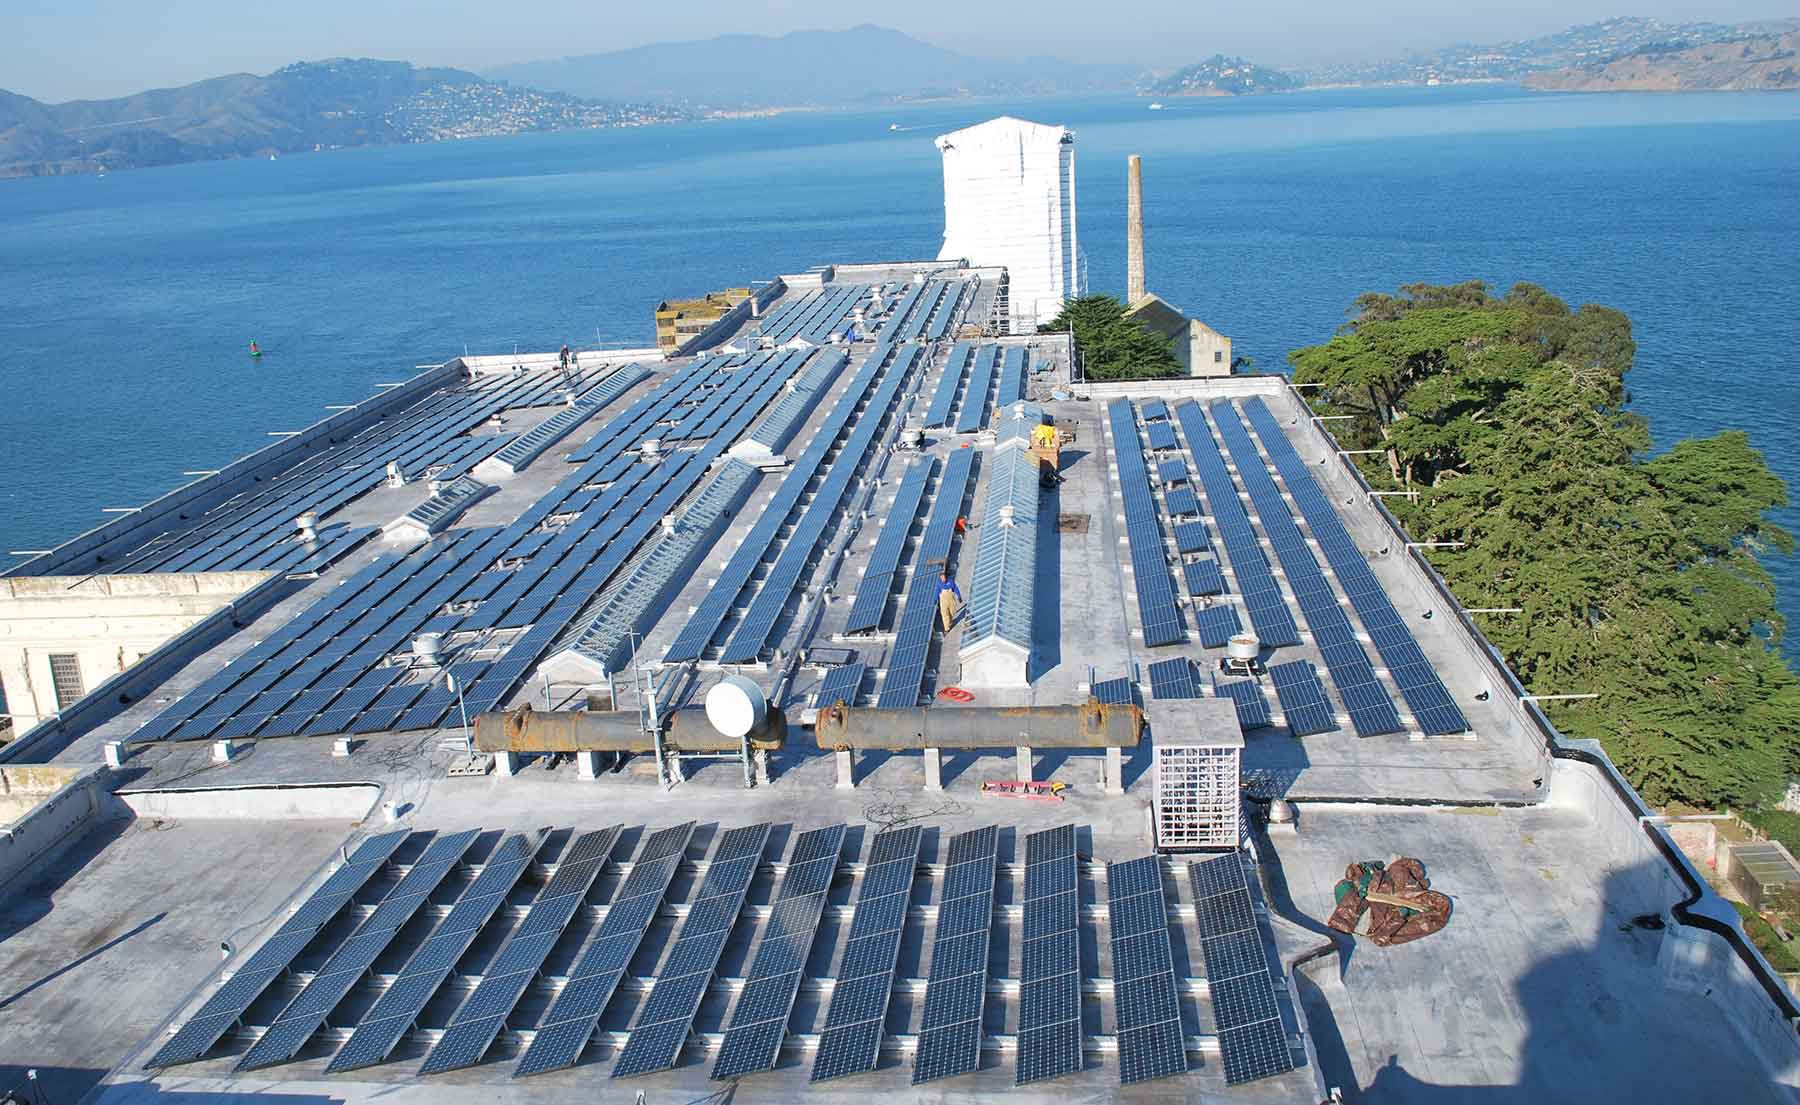 Photo of solar panels on the roof of Alcatraz's cellhouse building